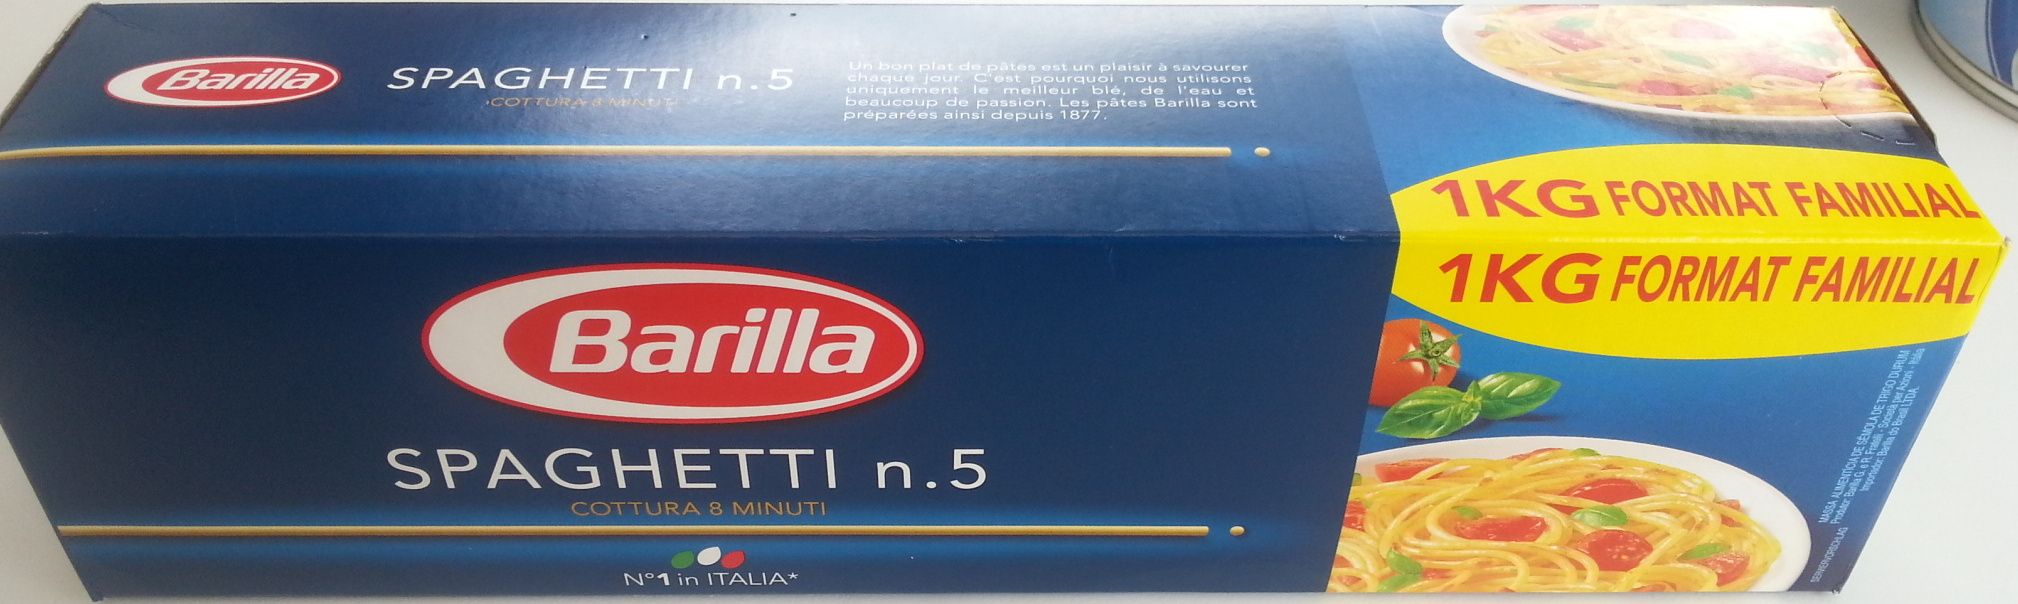 barilla spa 8 Barilla holding spa company research & investing information find executives and the latest company news.